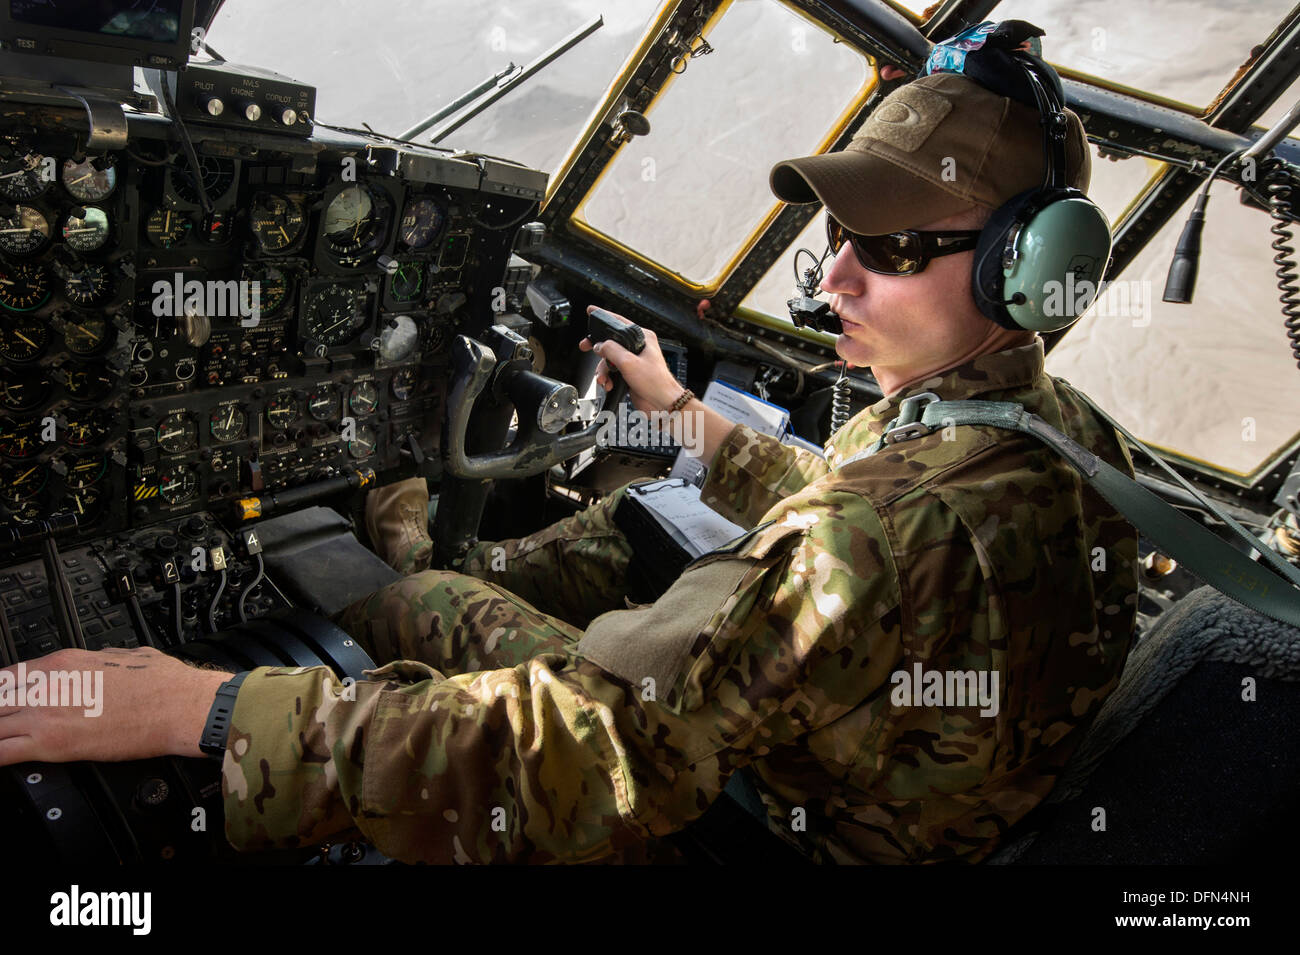 1st Lt. Brent Stevens, 774th Expeditionary Airlift Squadron pilot, maneuvers a C-130 Hercules towards Forward Operating Base Sharana, Paktika Province, Afghanistan, Sept. 28, 2013. This mission marked a retrograde milestone as the 774th EAS transported th - Stock Image